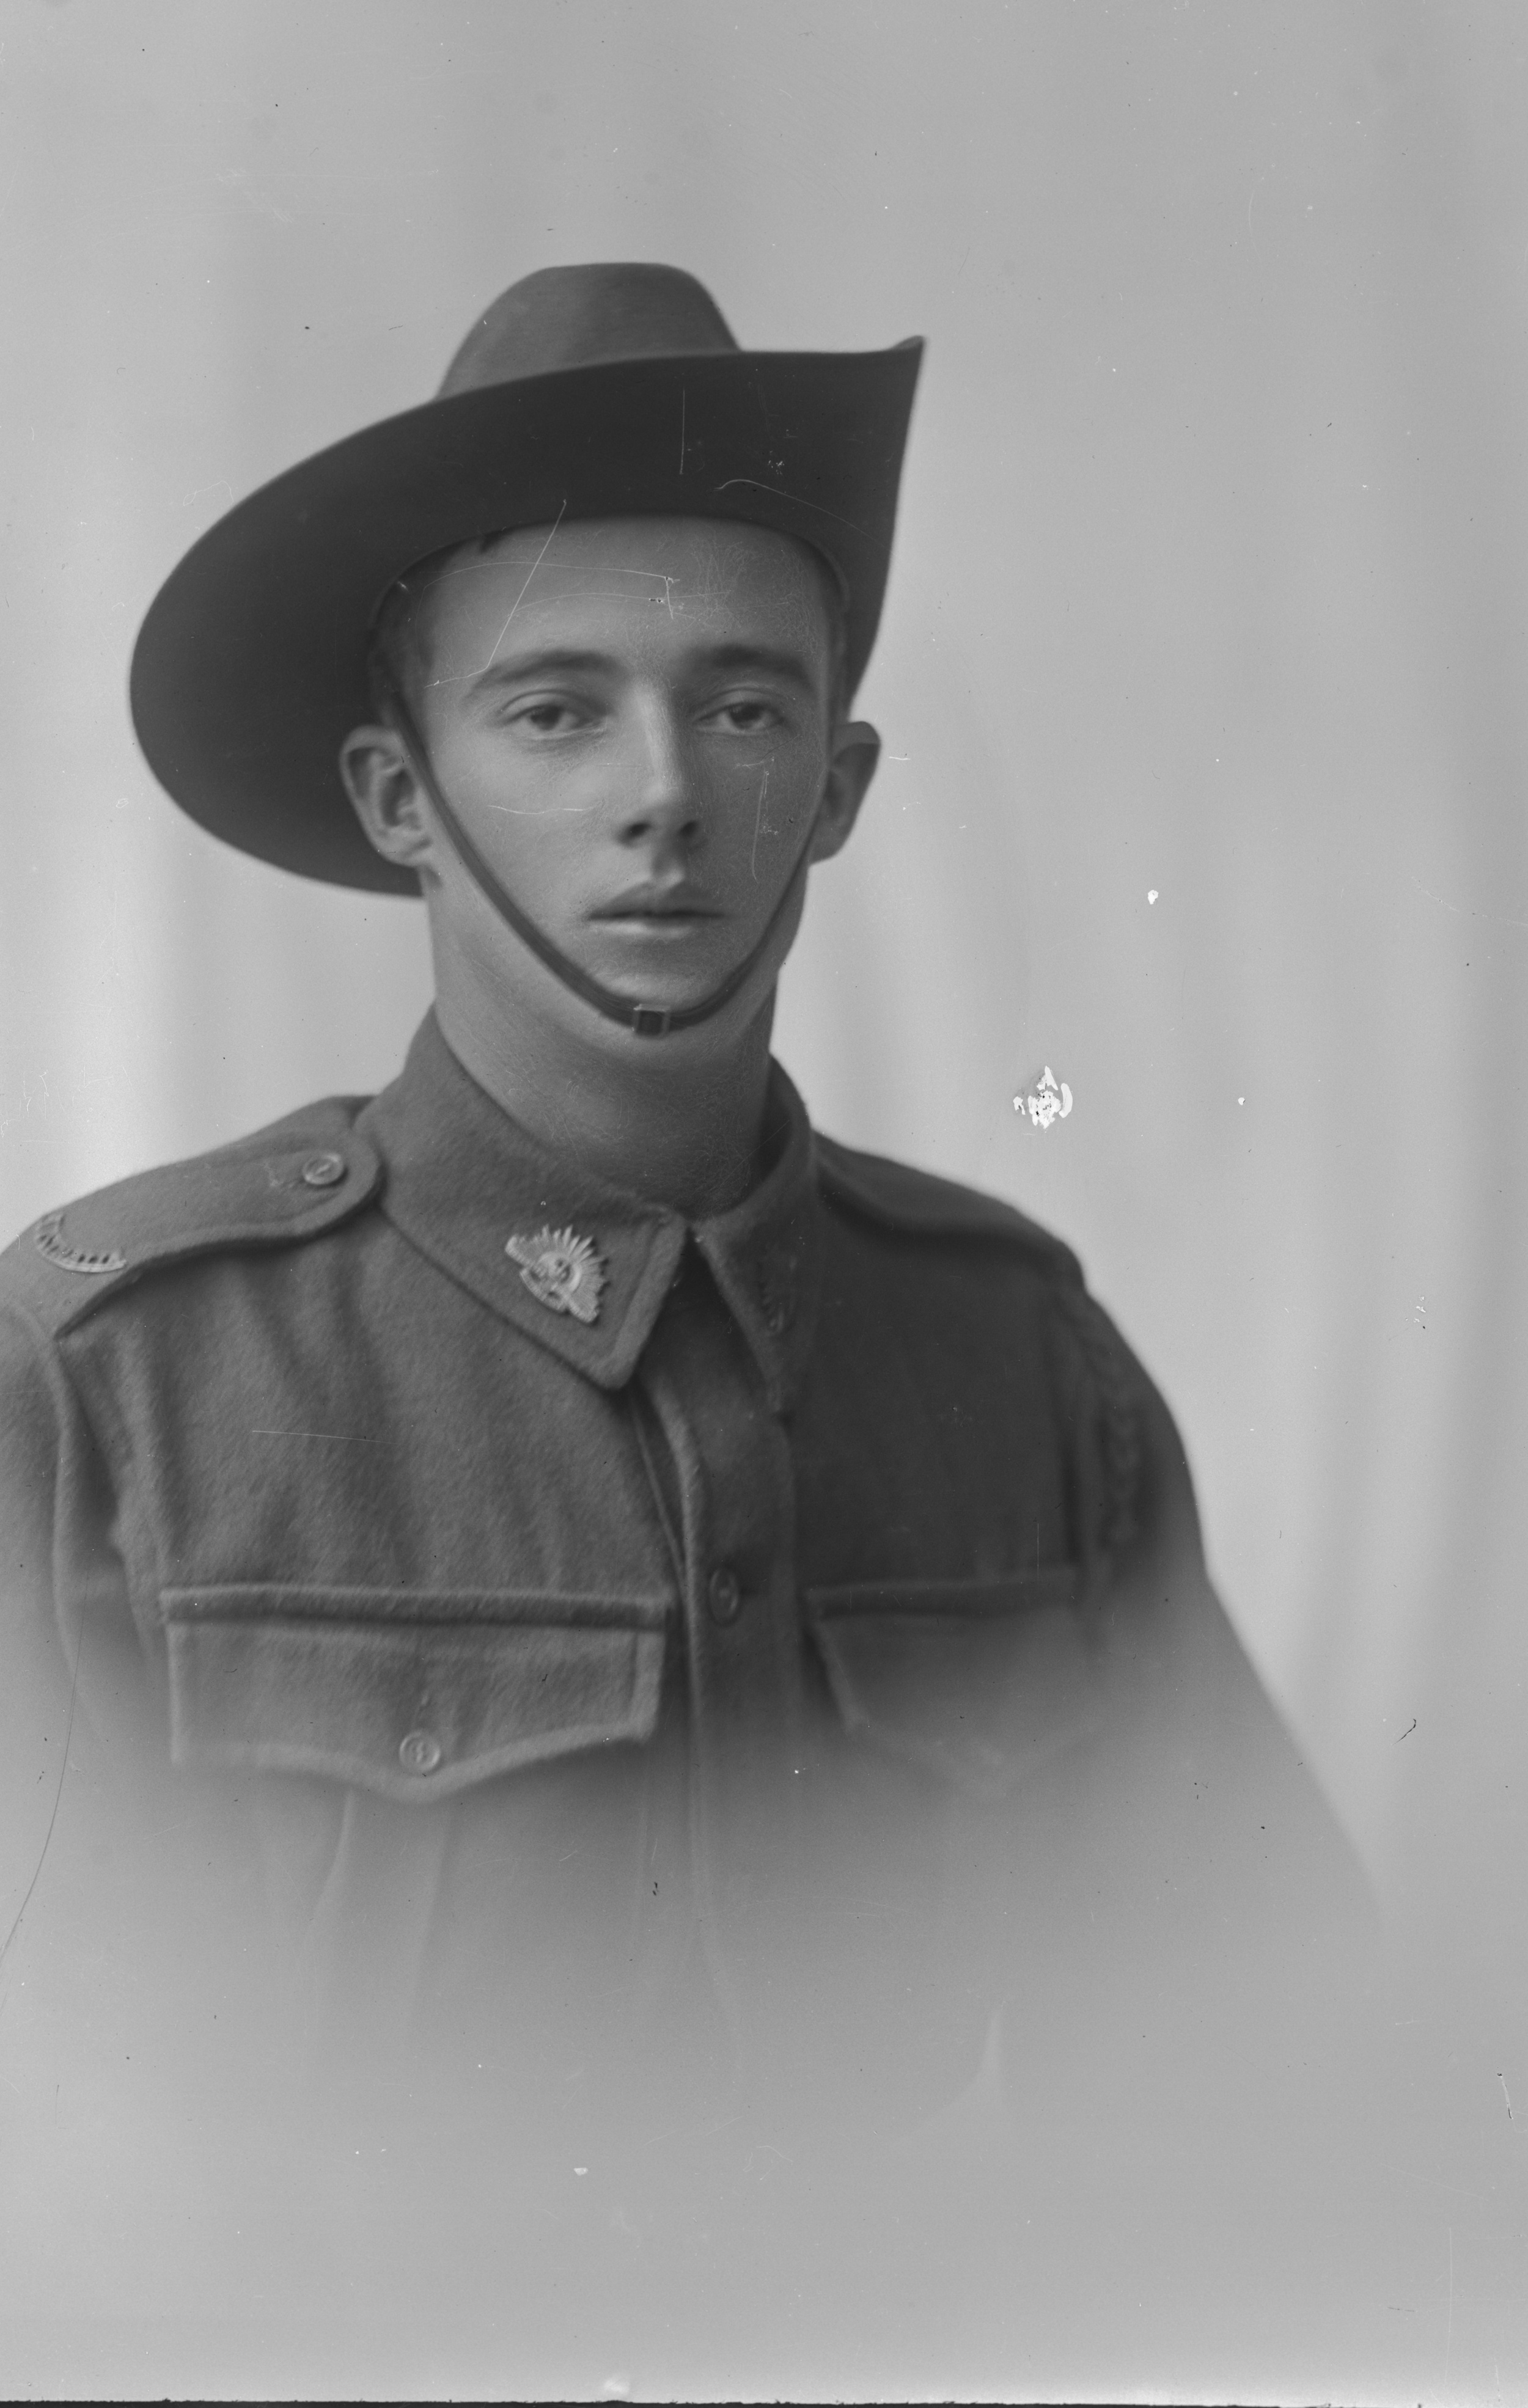 Photographed at the Dease Studio, 117 Barrack Street Perth WA Image courtesy of the State Library of Western Australia: 108532PD